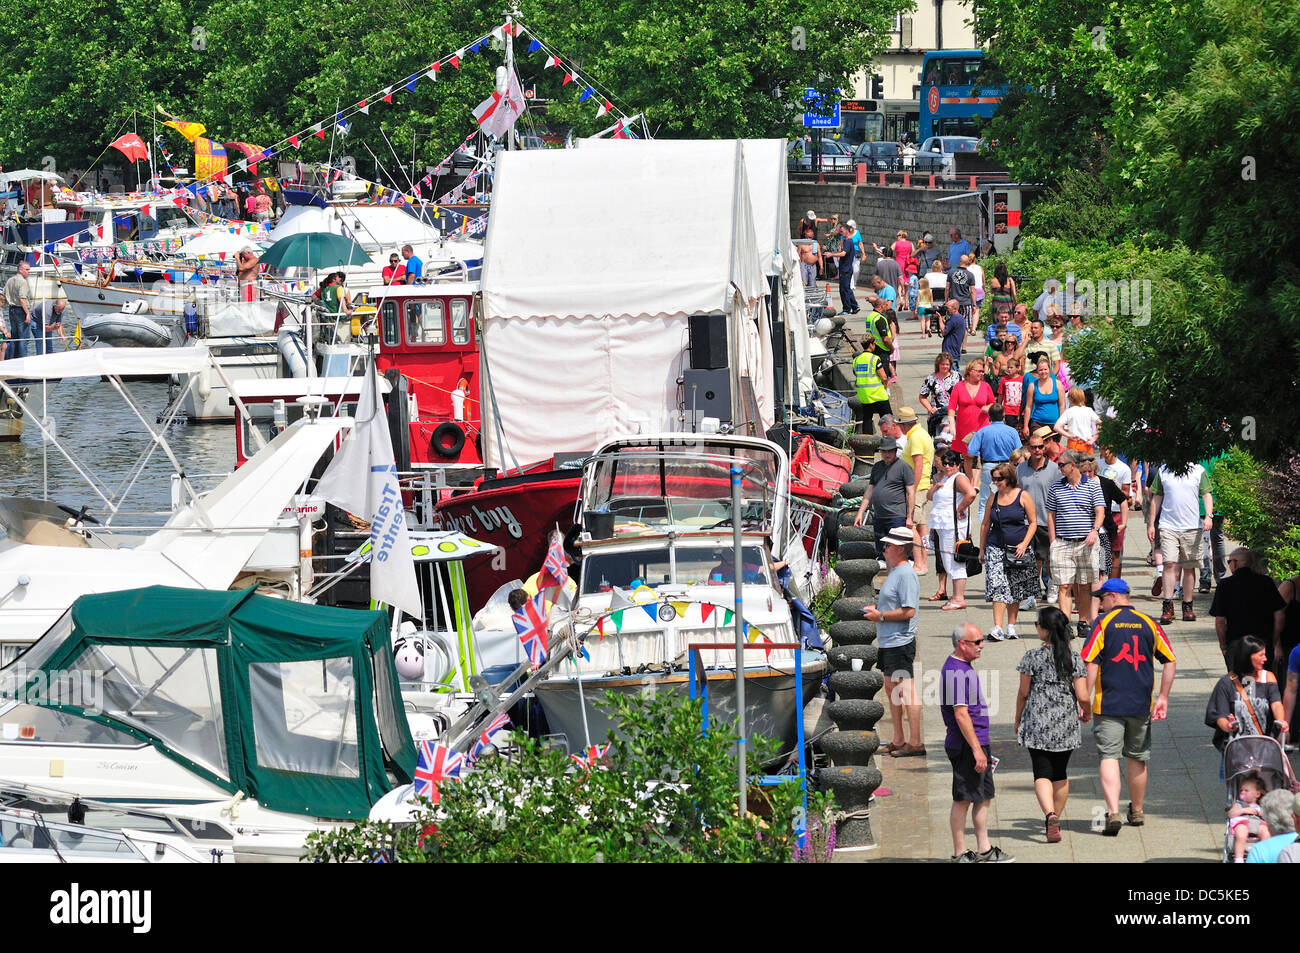 Maidstone, Kent, England, UK. Annual Maidstone River Festival (July 27th 2013) Stock Photo